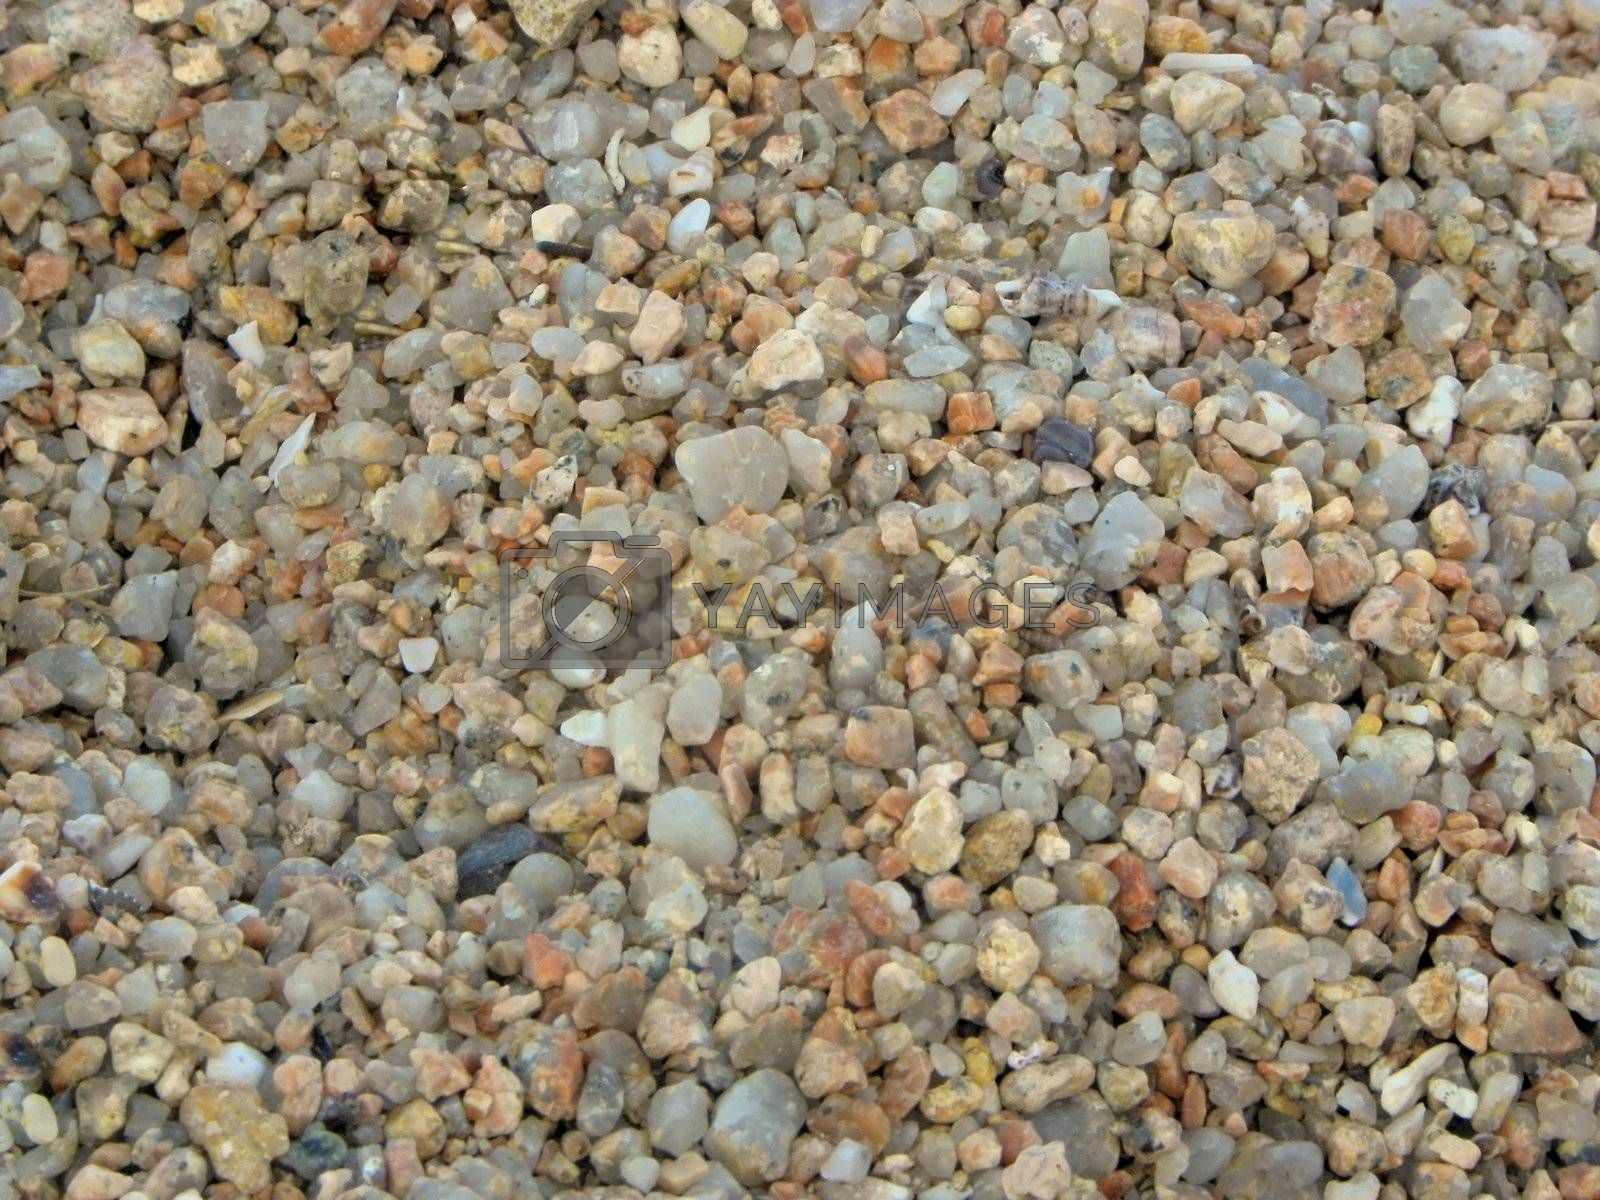 Small stones on a beach